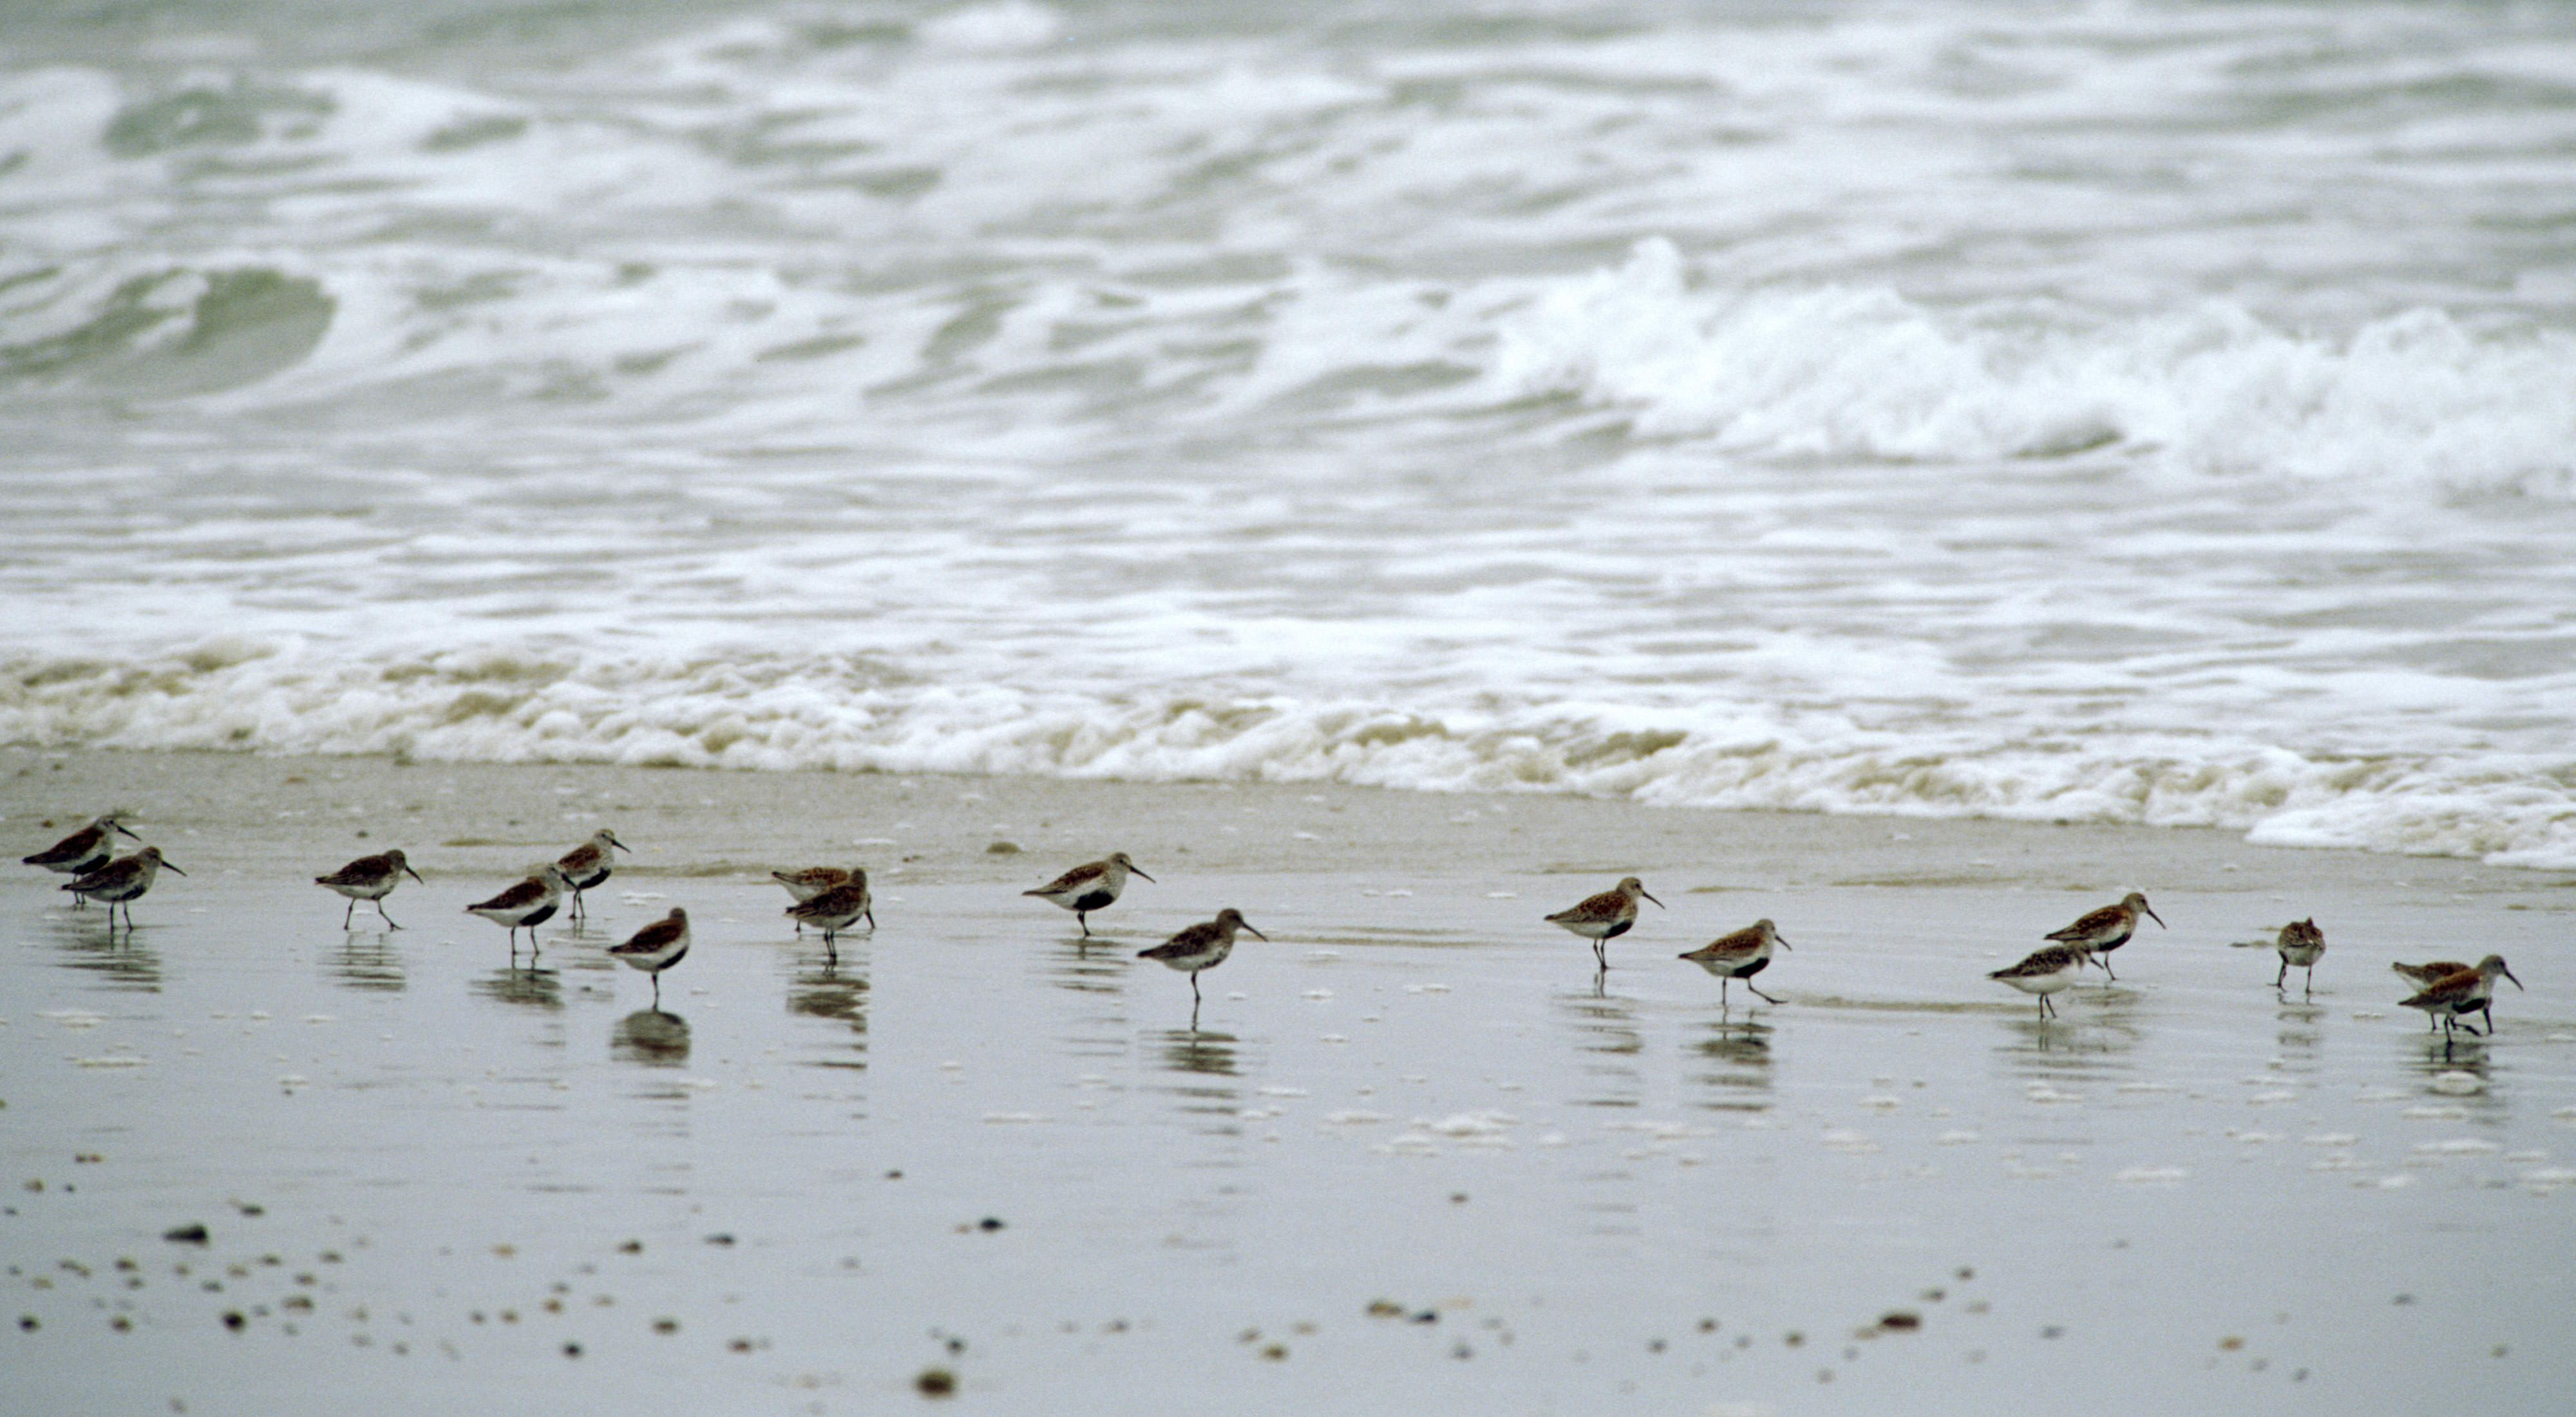 About a dozen piping plovers on the sand along the surf.